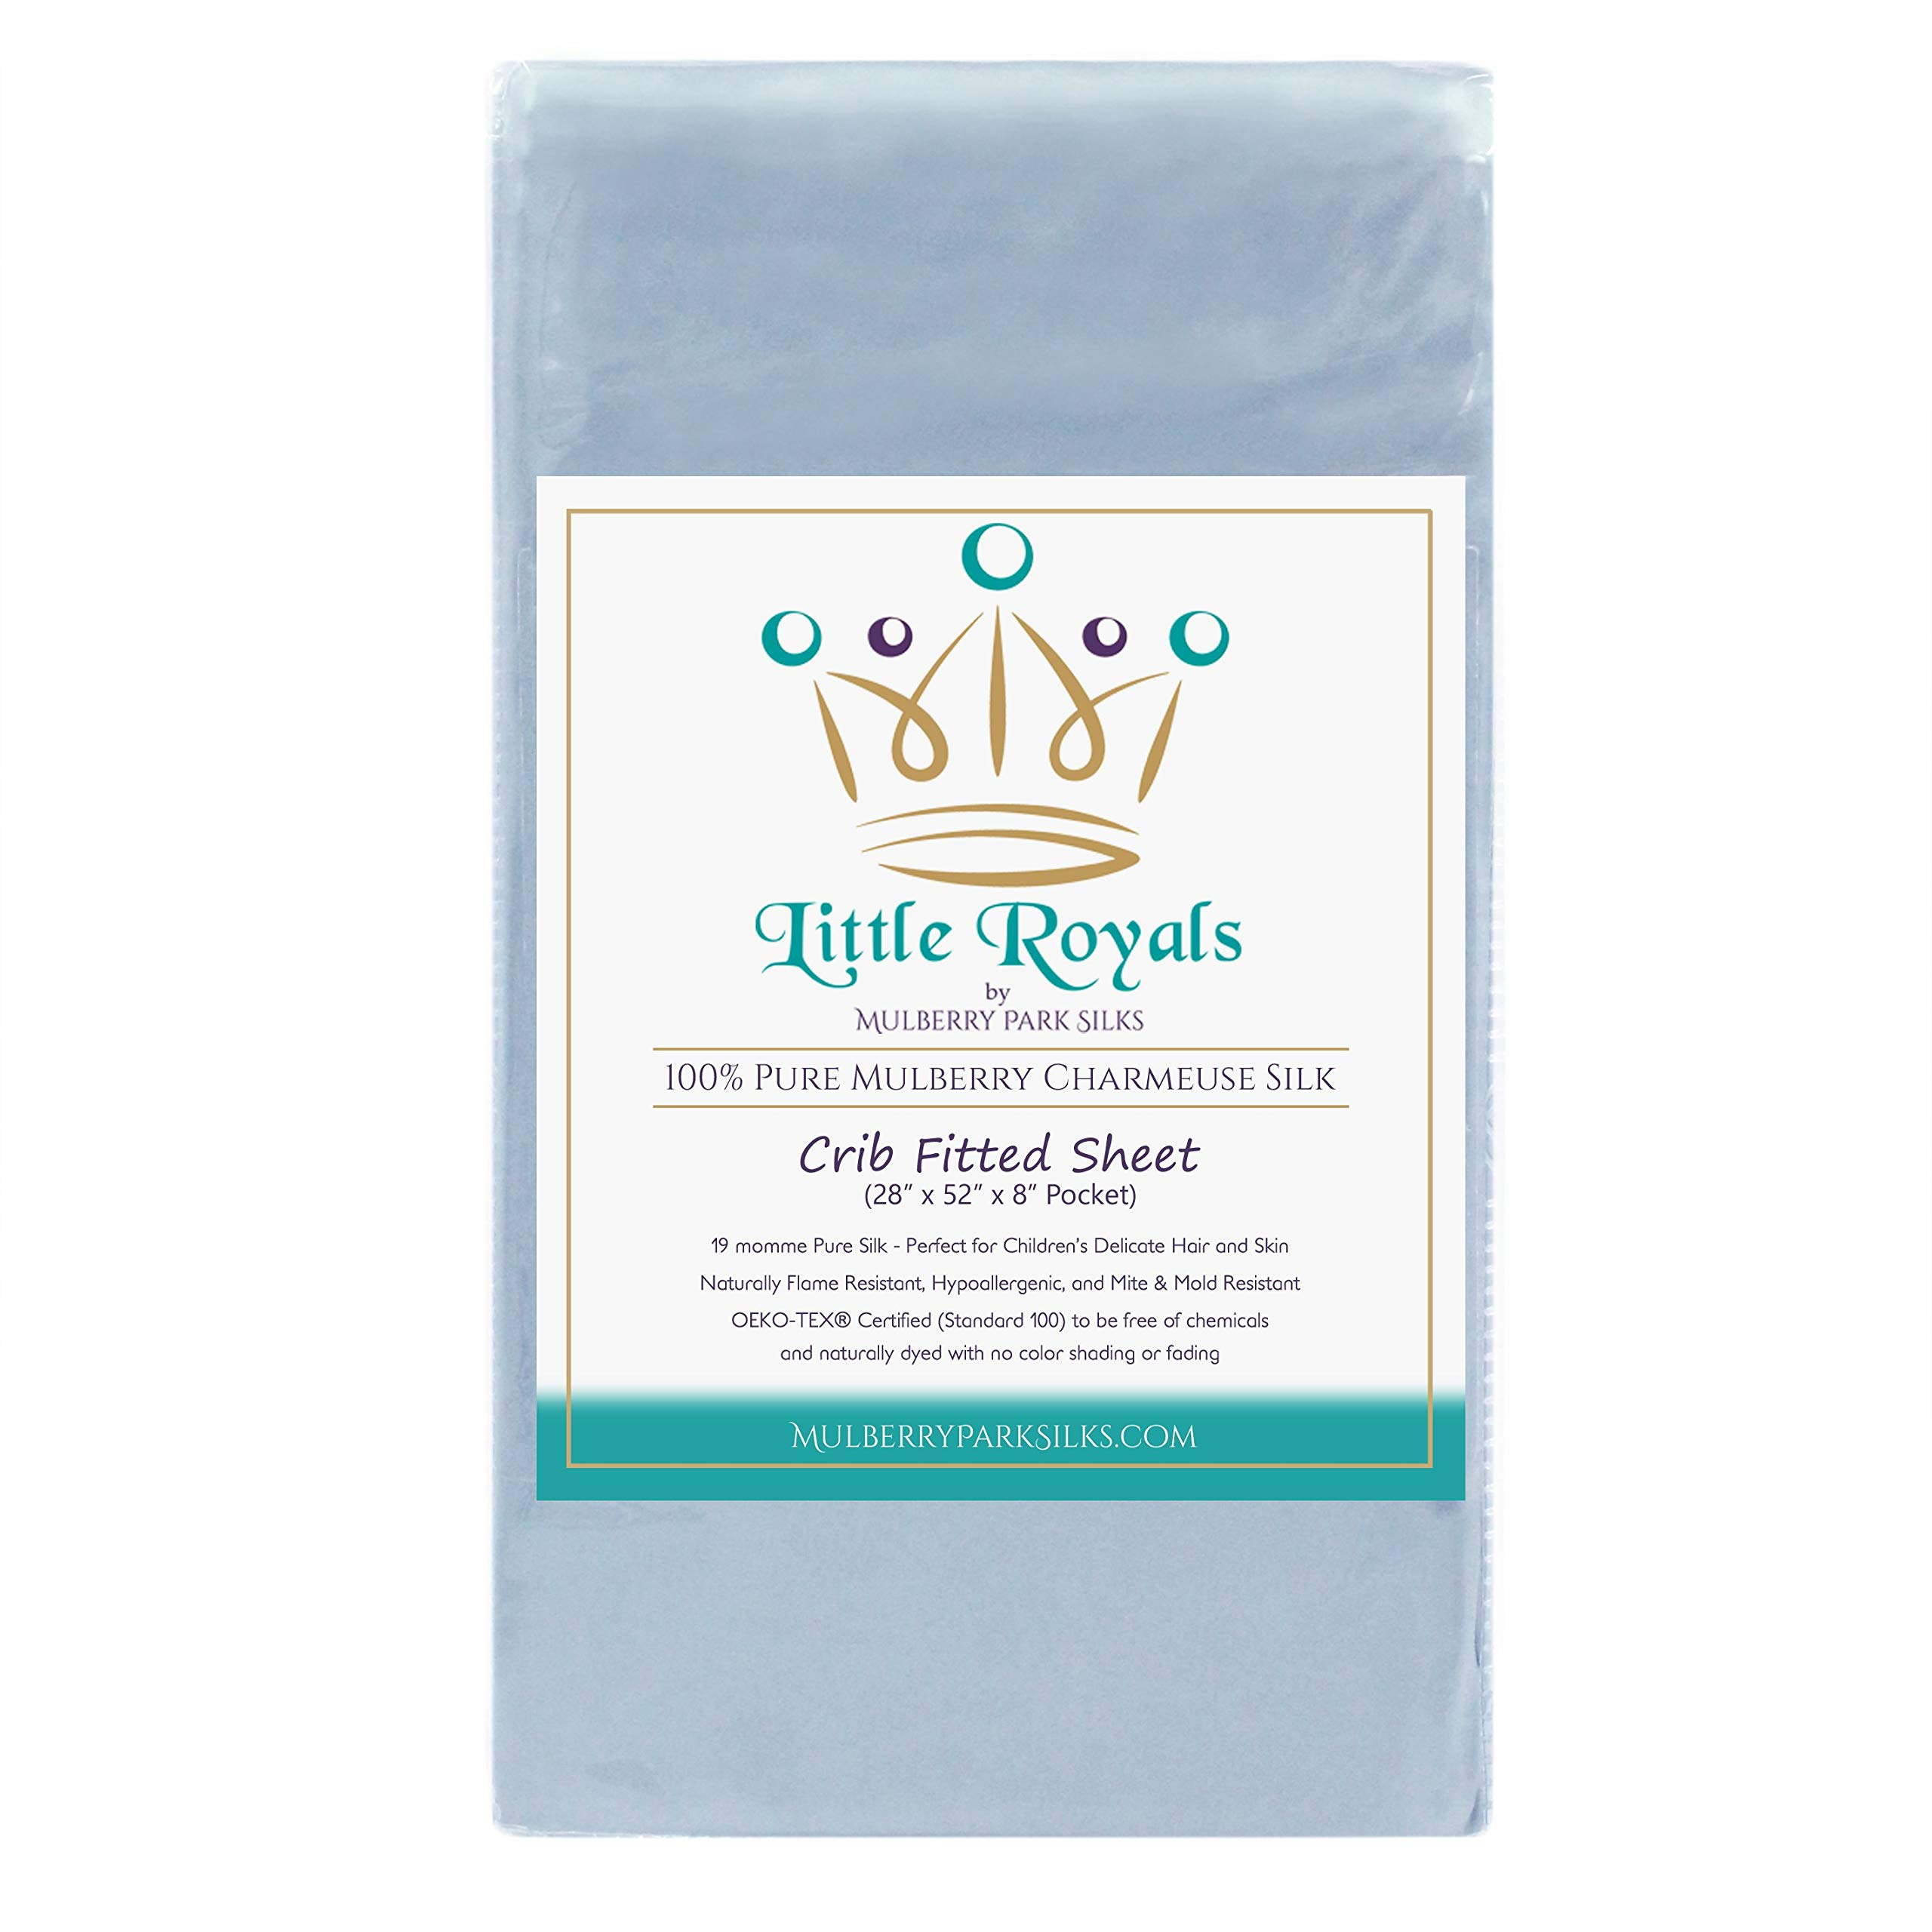 Little Royals Fitted Crib Sheet (28'' x 52'') - Bedtime Blue - 100% Pure Charmeuse Silk - Soft, Gentle Fabric for a Child's Delicate Skin and Hair - 19 Momme by Mulberry Park Silks